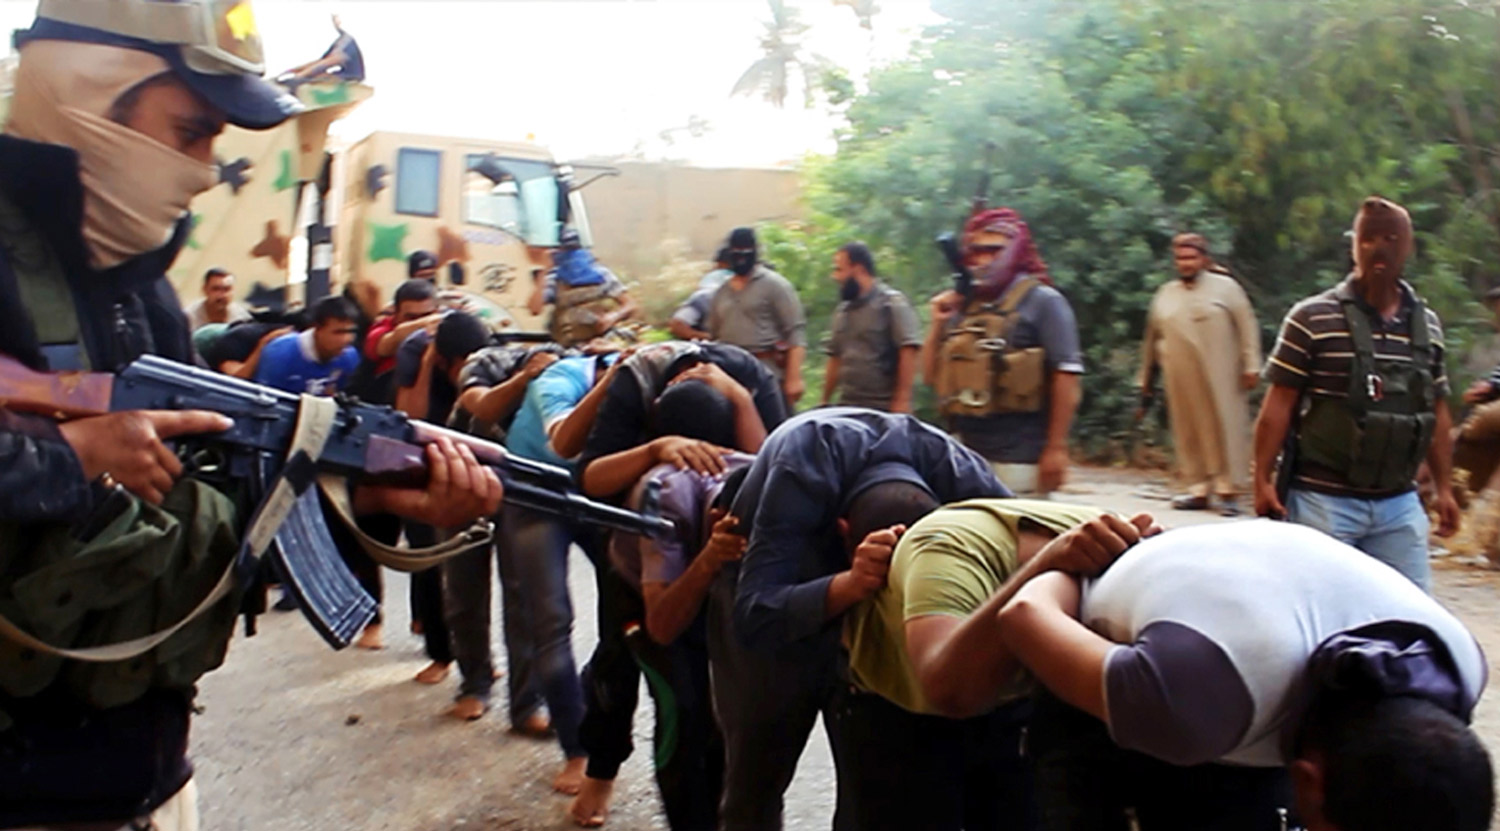 An image posted by militants from the Islamic State of Iraq and al-Sham (ISIS) shows insurgents leading away captured Iraqi soldiers, who were later massacred.